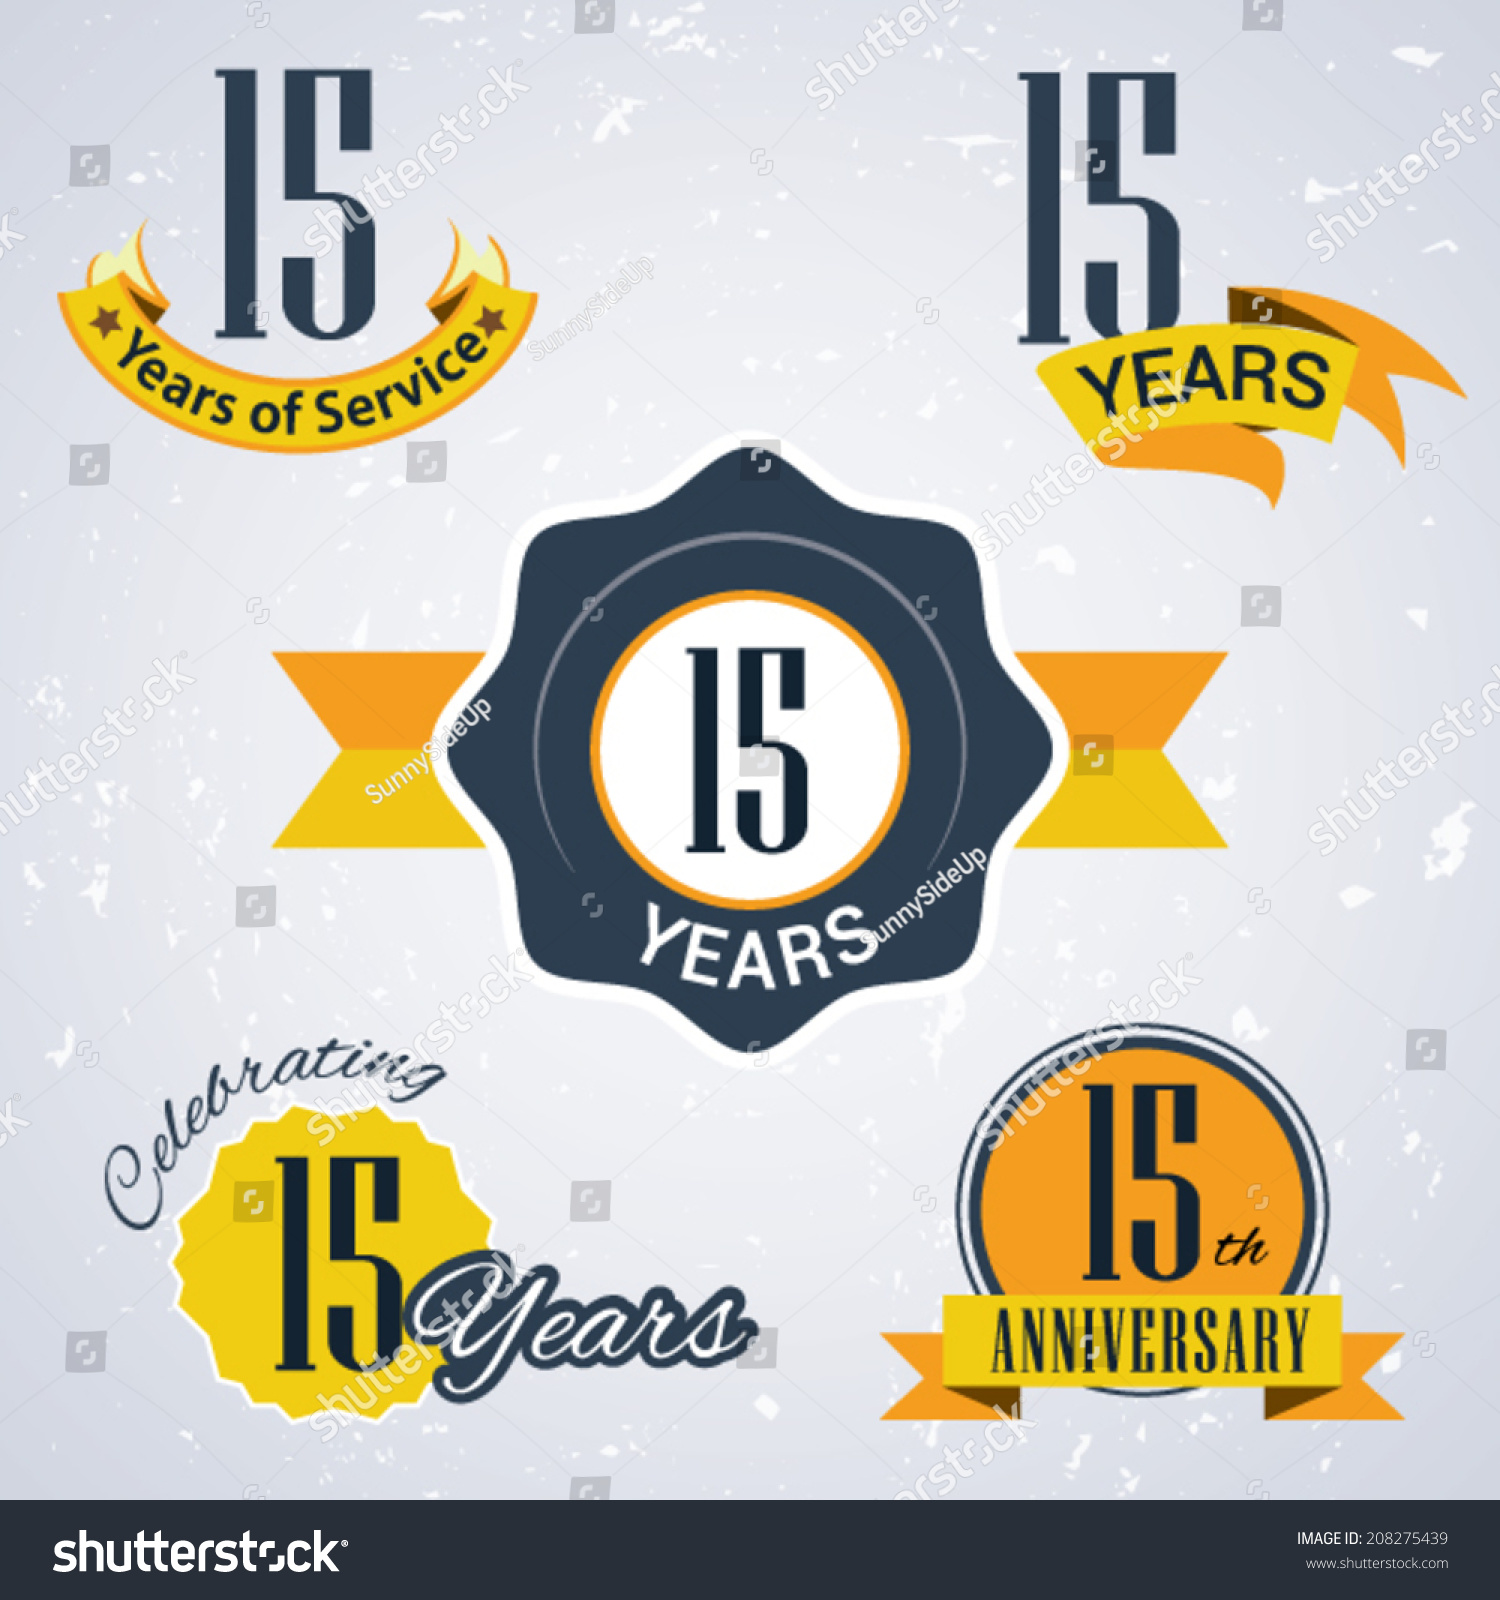 15 Anniversary Symbol Gallery Meaning Of Text Symbols